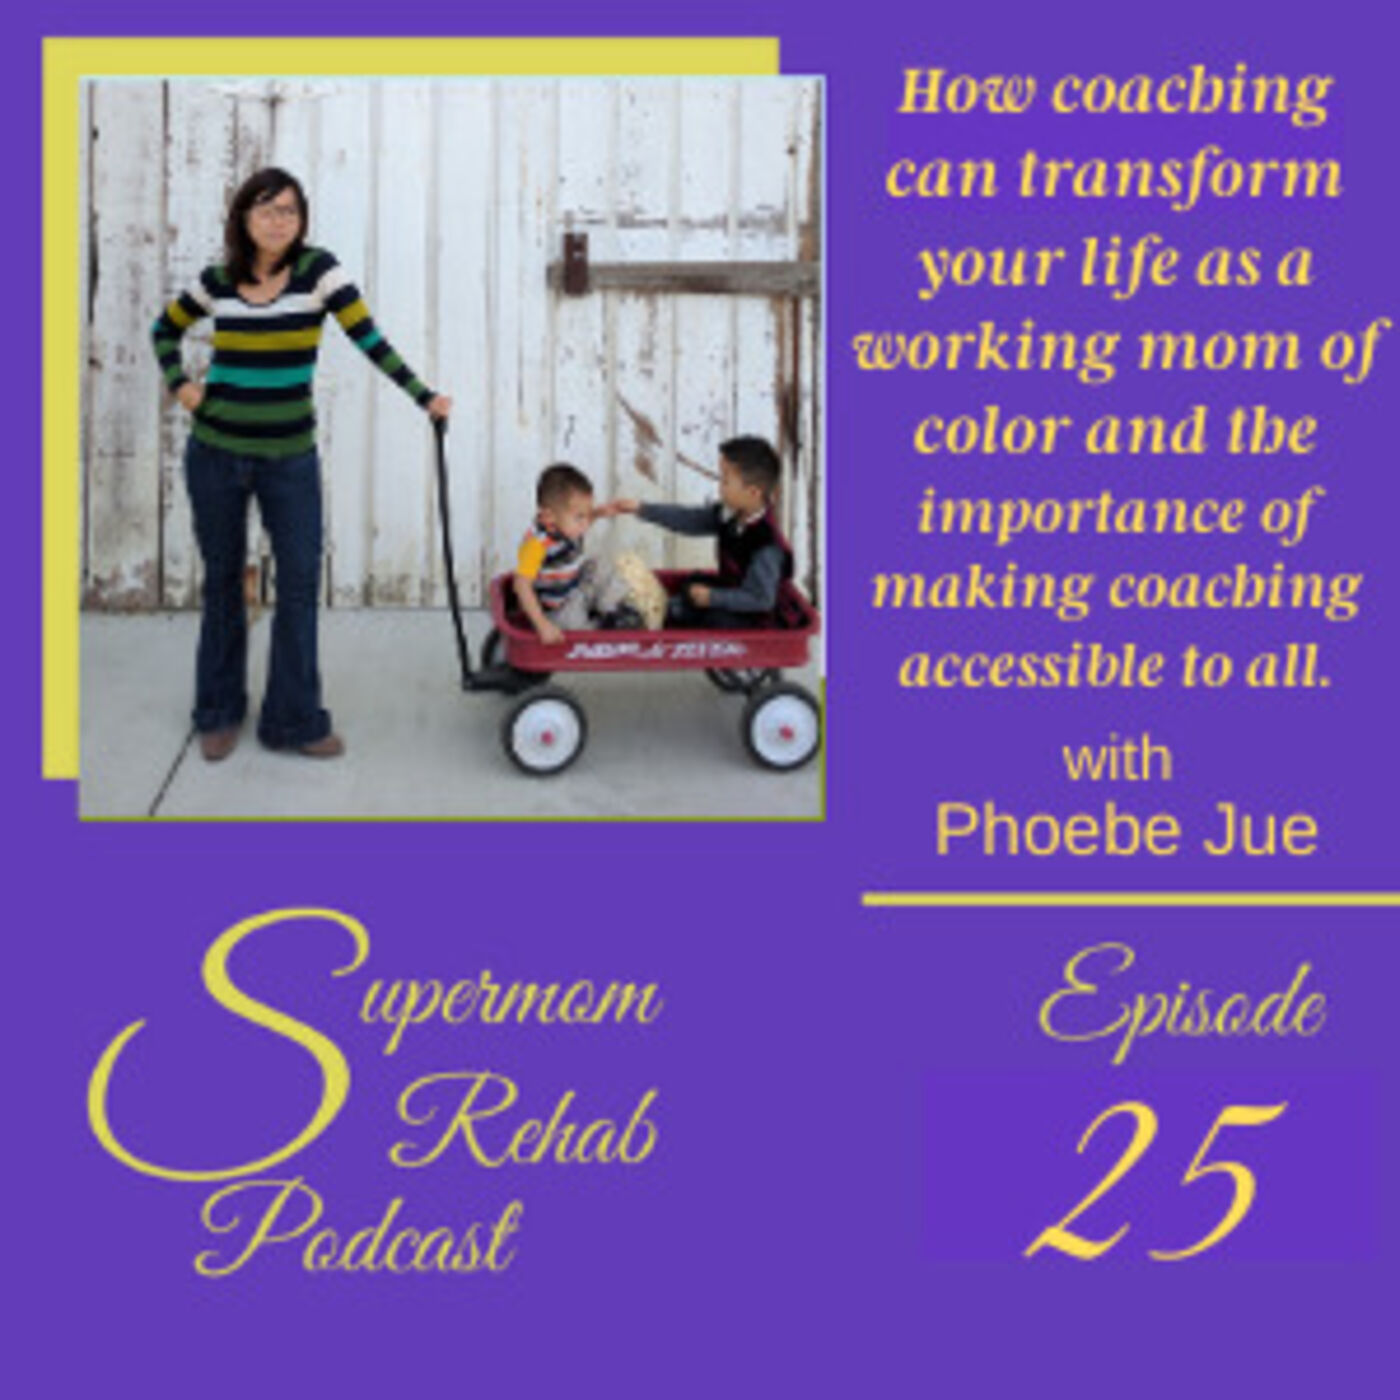 Episode 25: How coaching can transform your life as a working mom of color and the importance of making coaching accessible to all.